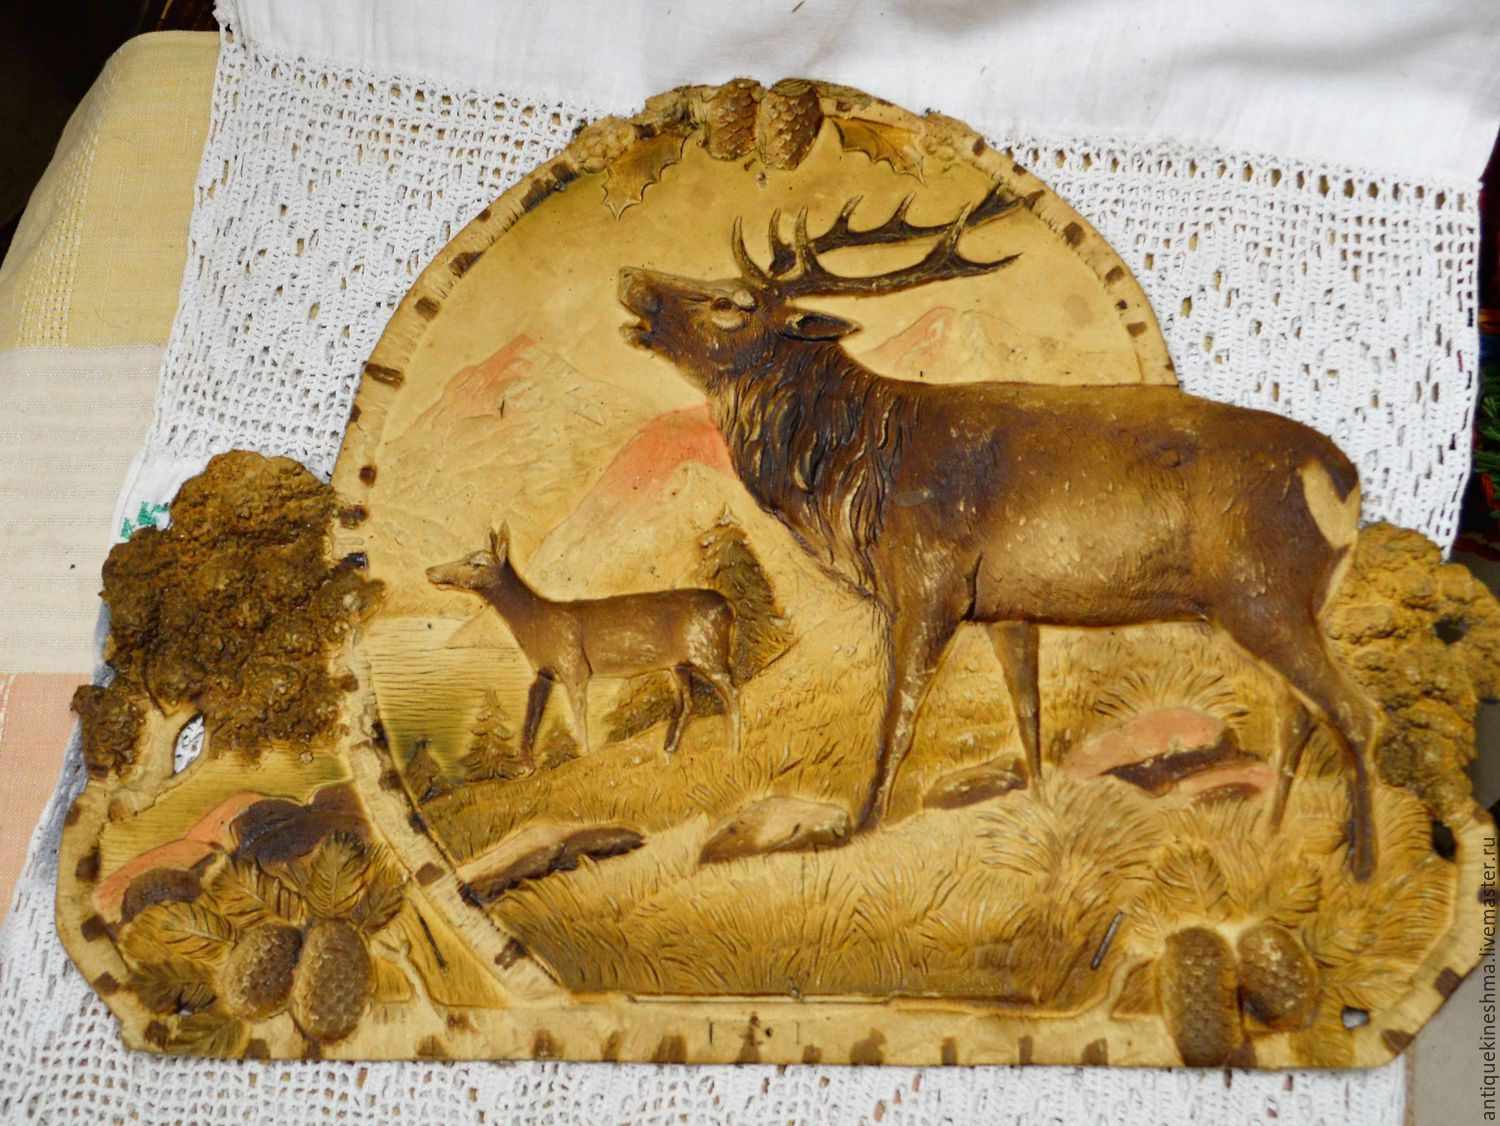 Panels for wall tear-off calendar paper mache 1950s Deer – shop ...